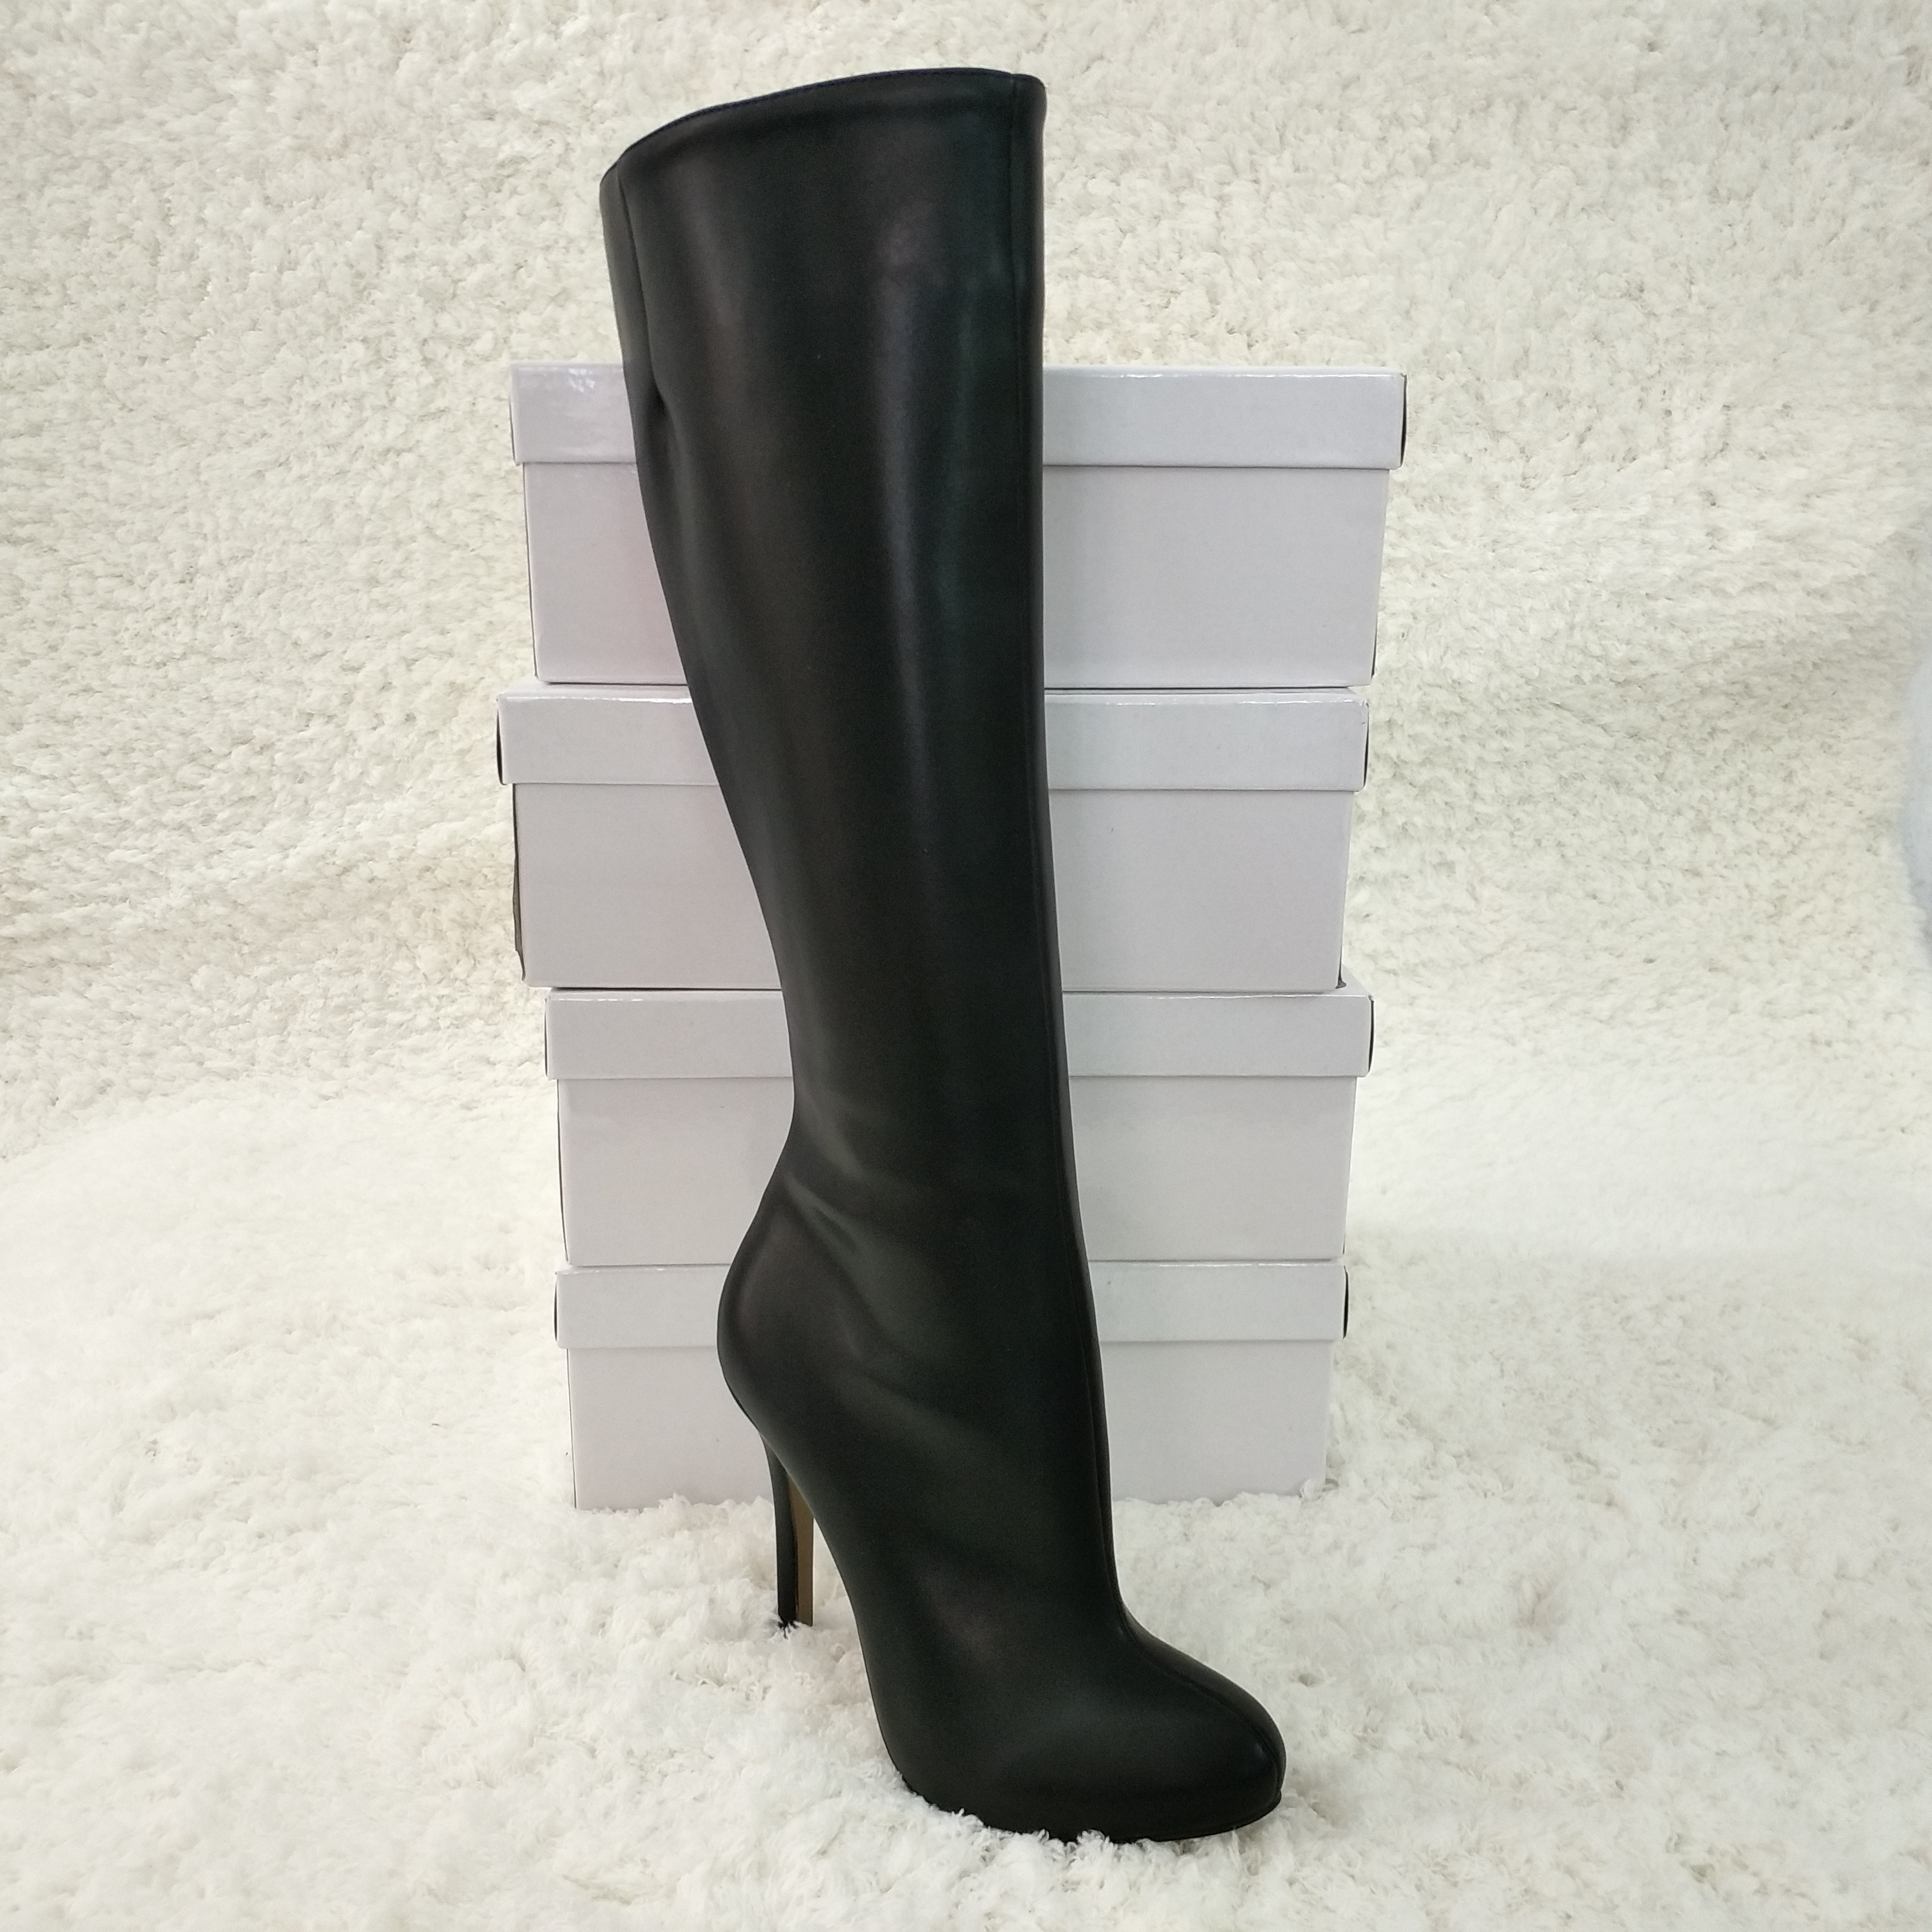 Fashion Women Stiletto Thin High Heel Knee-High Boots Round Toe Black PU Evening Party Career Lady Office Long Boots 3cbt-b11